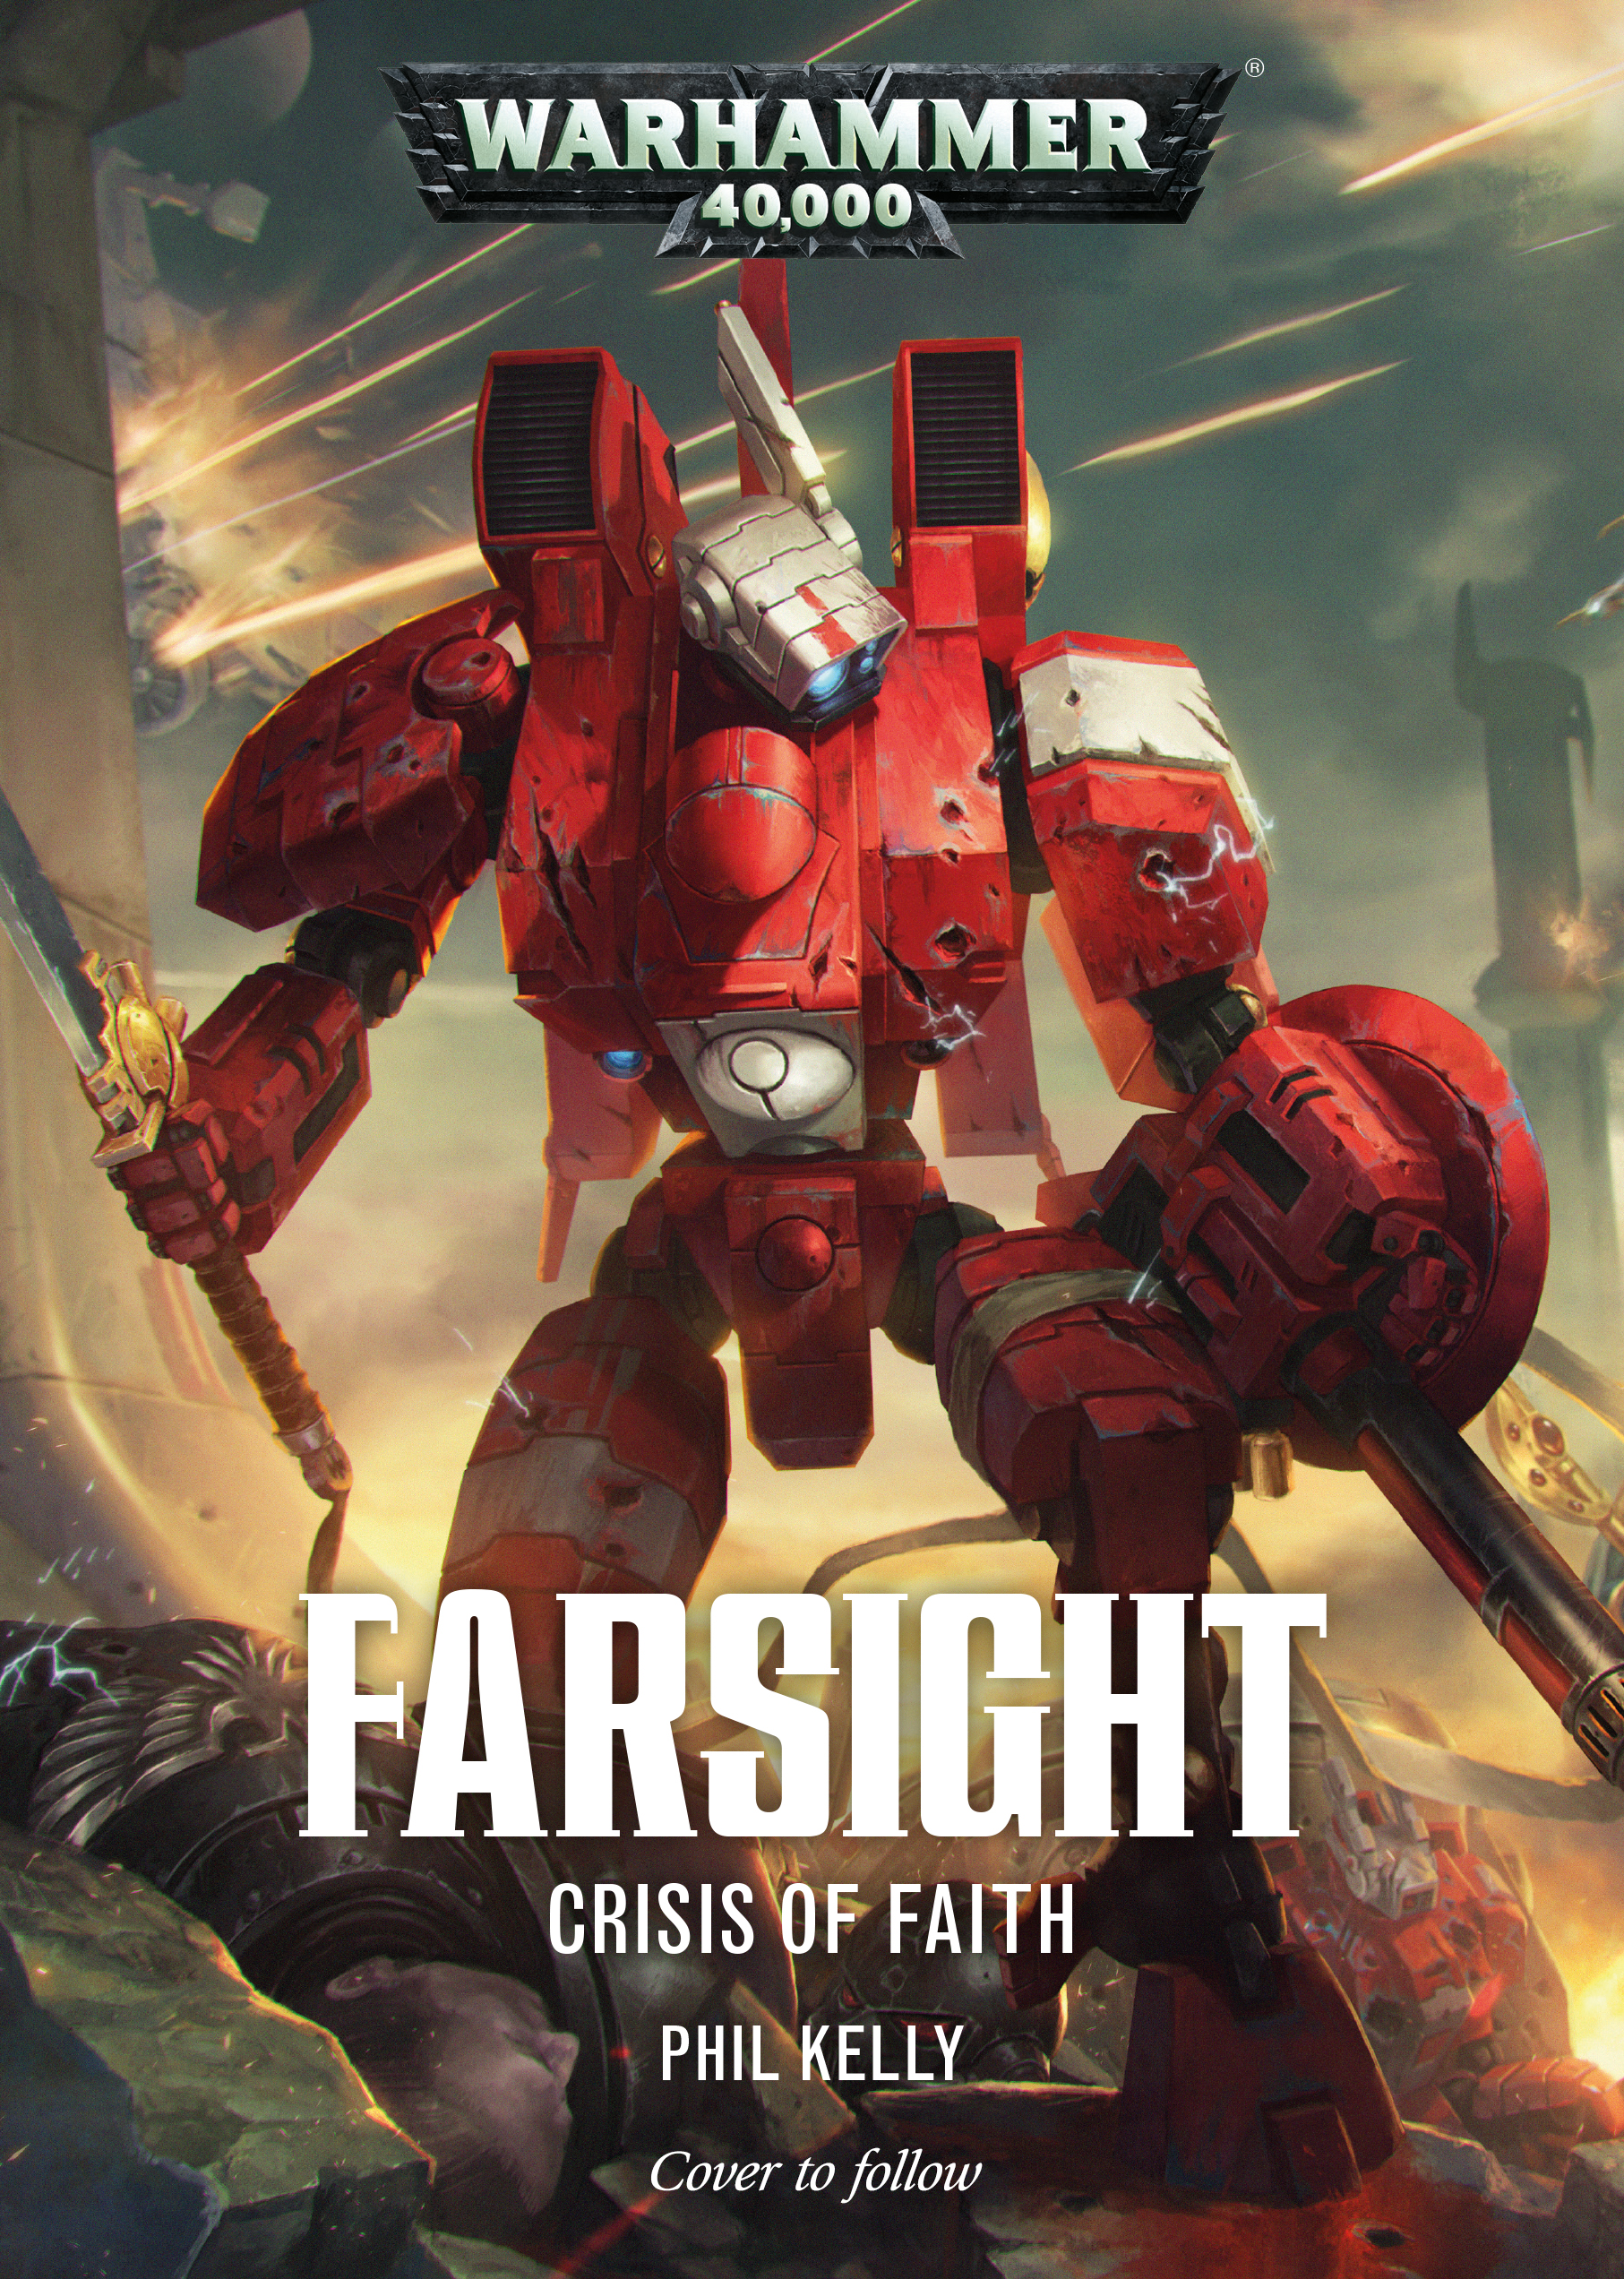 Farsight-Crisis-of-Faith-A5HB-Cover.indd